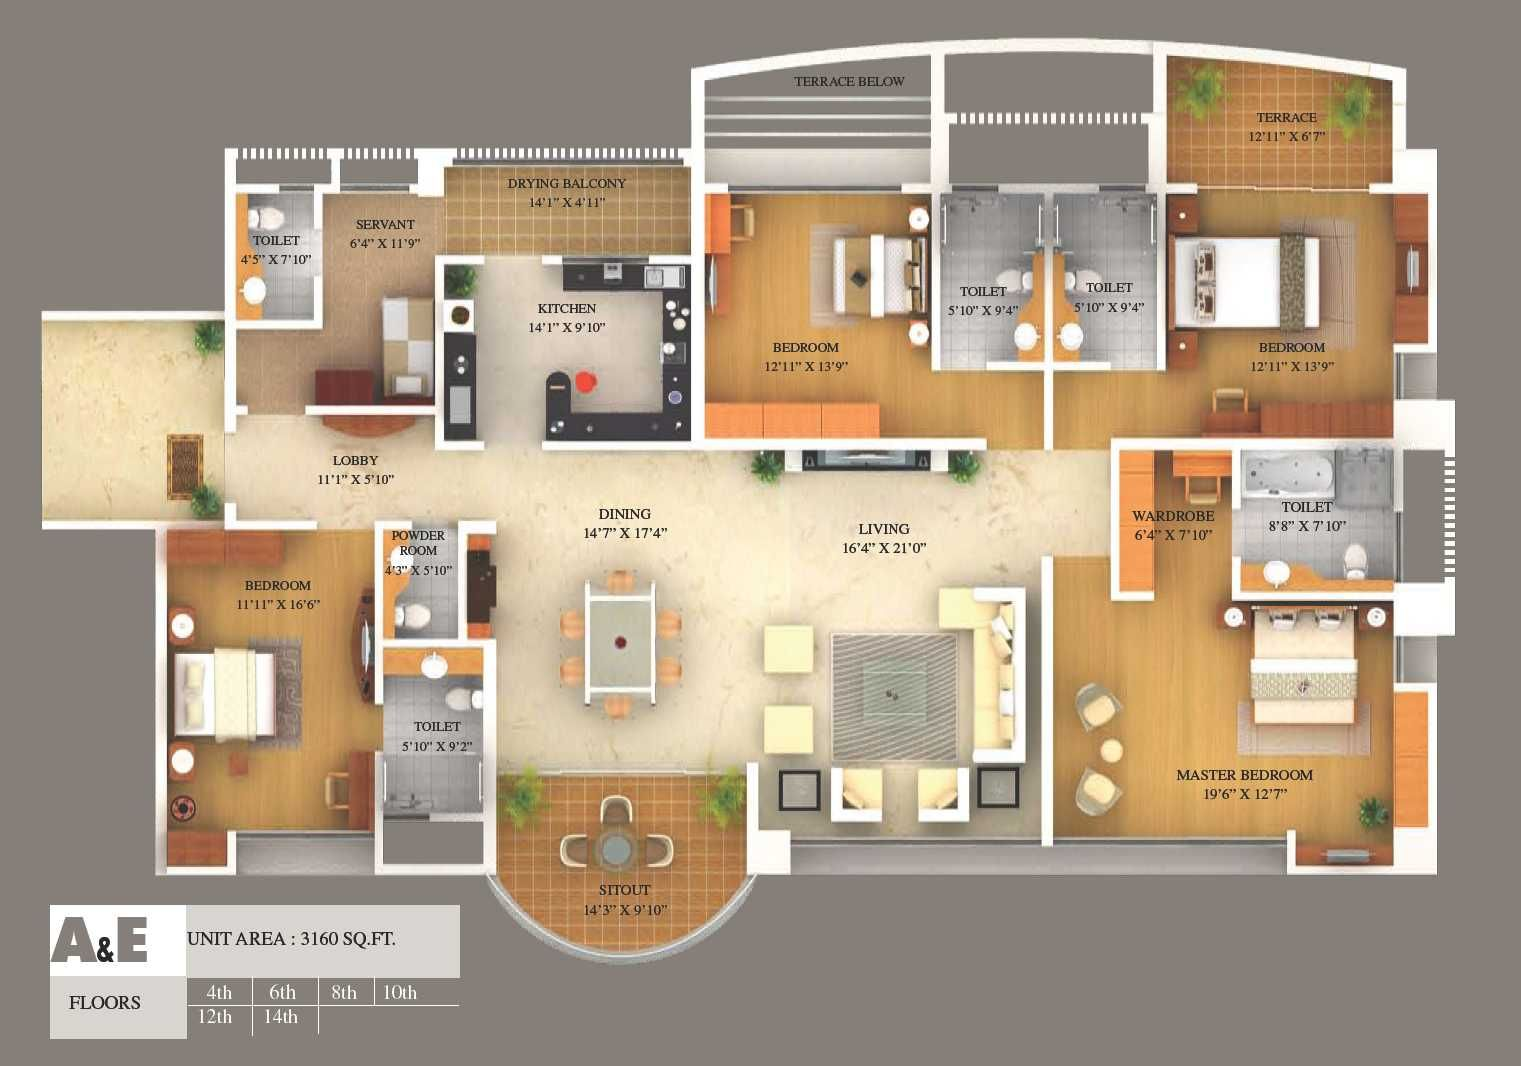 Simple House Plan With 5 Bedrooms 3d Images Home Design Maker Extraordinary More Bedroom Floor Plans Floor Plan Design Online Home Design Home Design Software